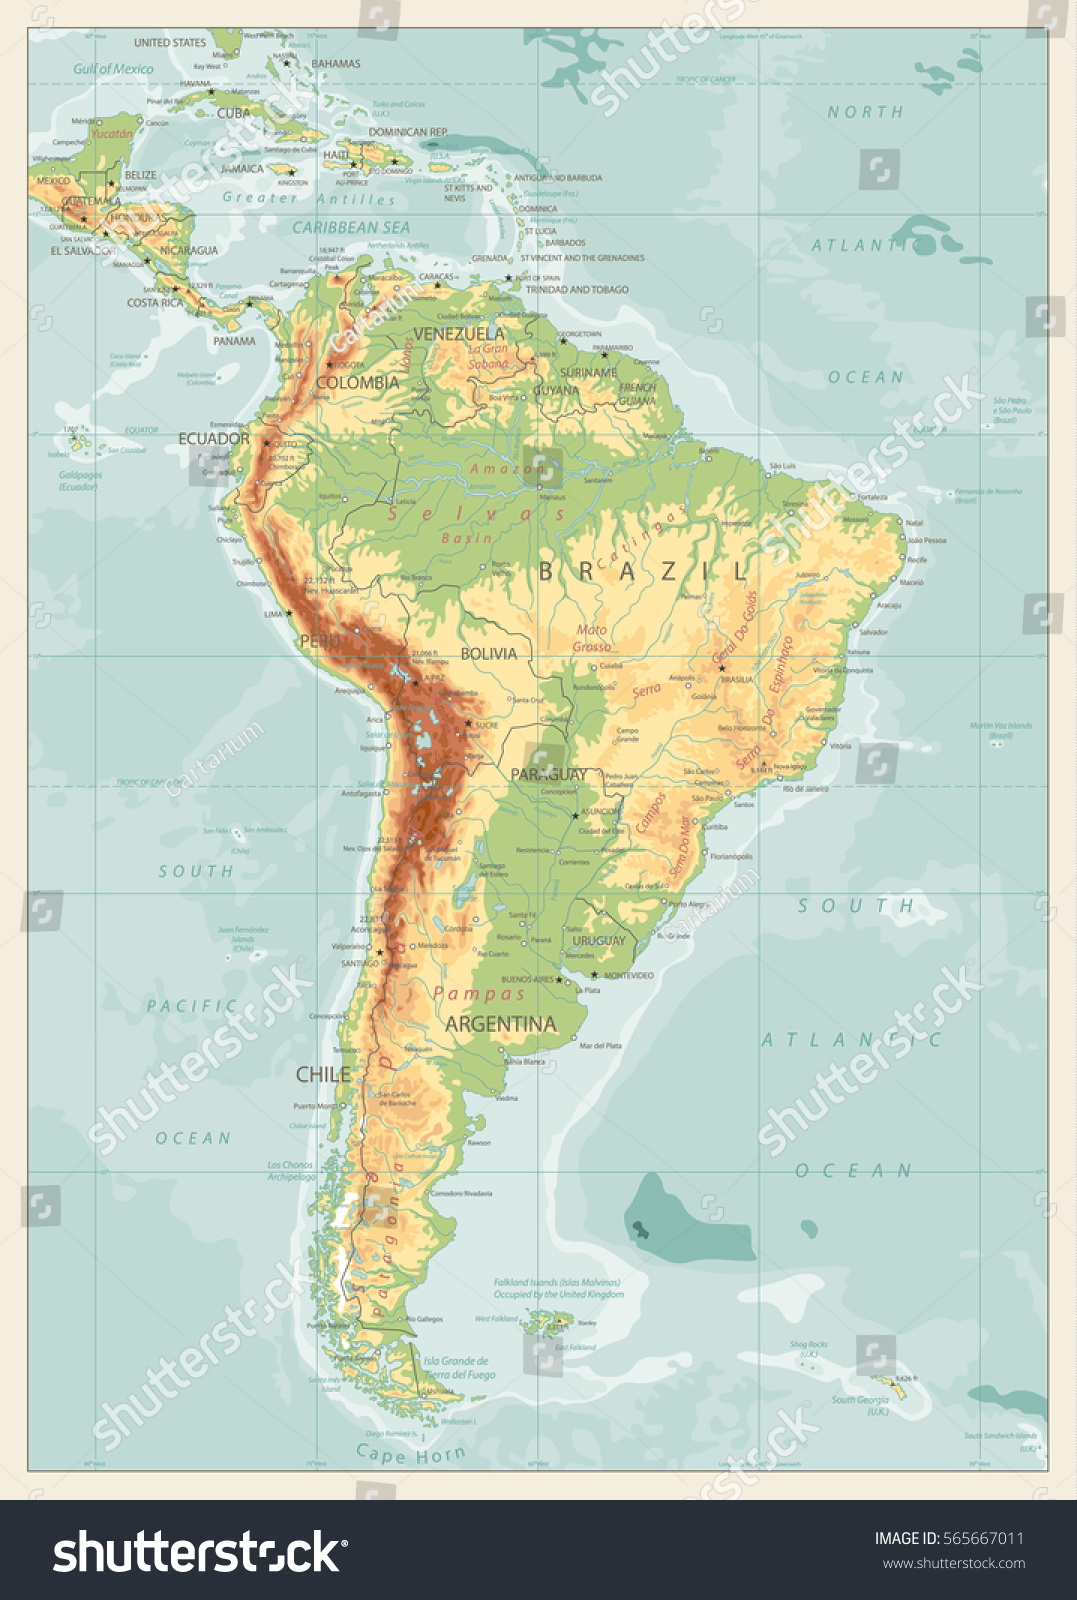 Map Of America Rivers.Retro Color Physical Map South America Stock Vector Royalty Free